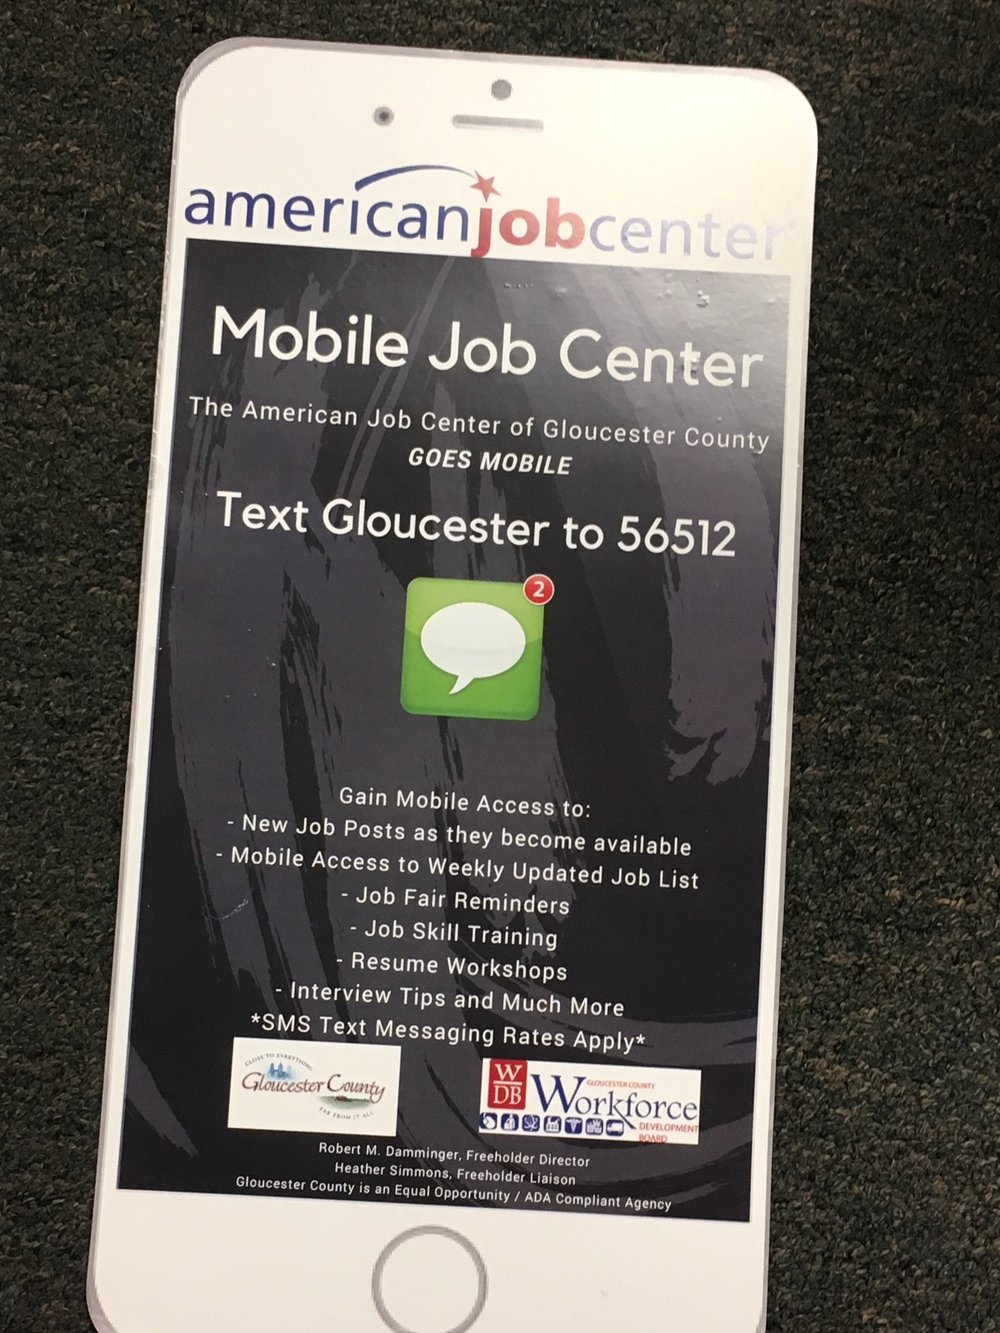 Mobile-Job-Center.jpg